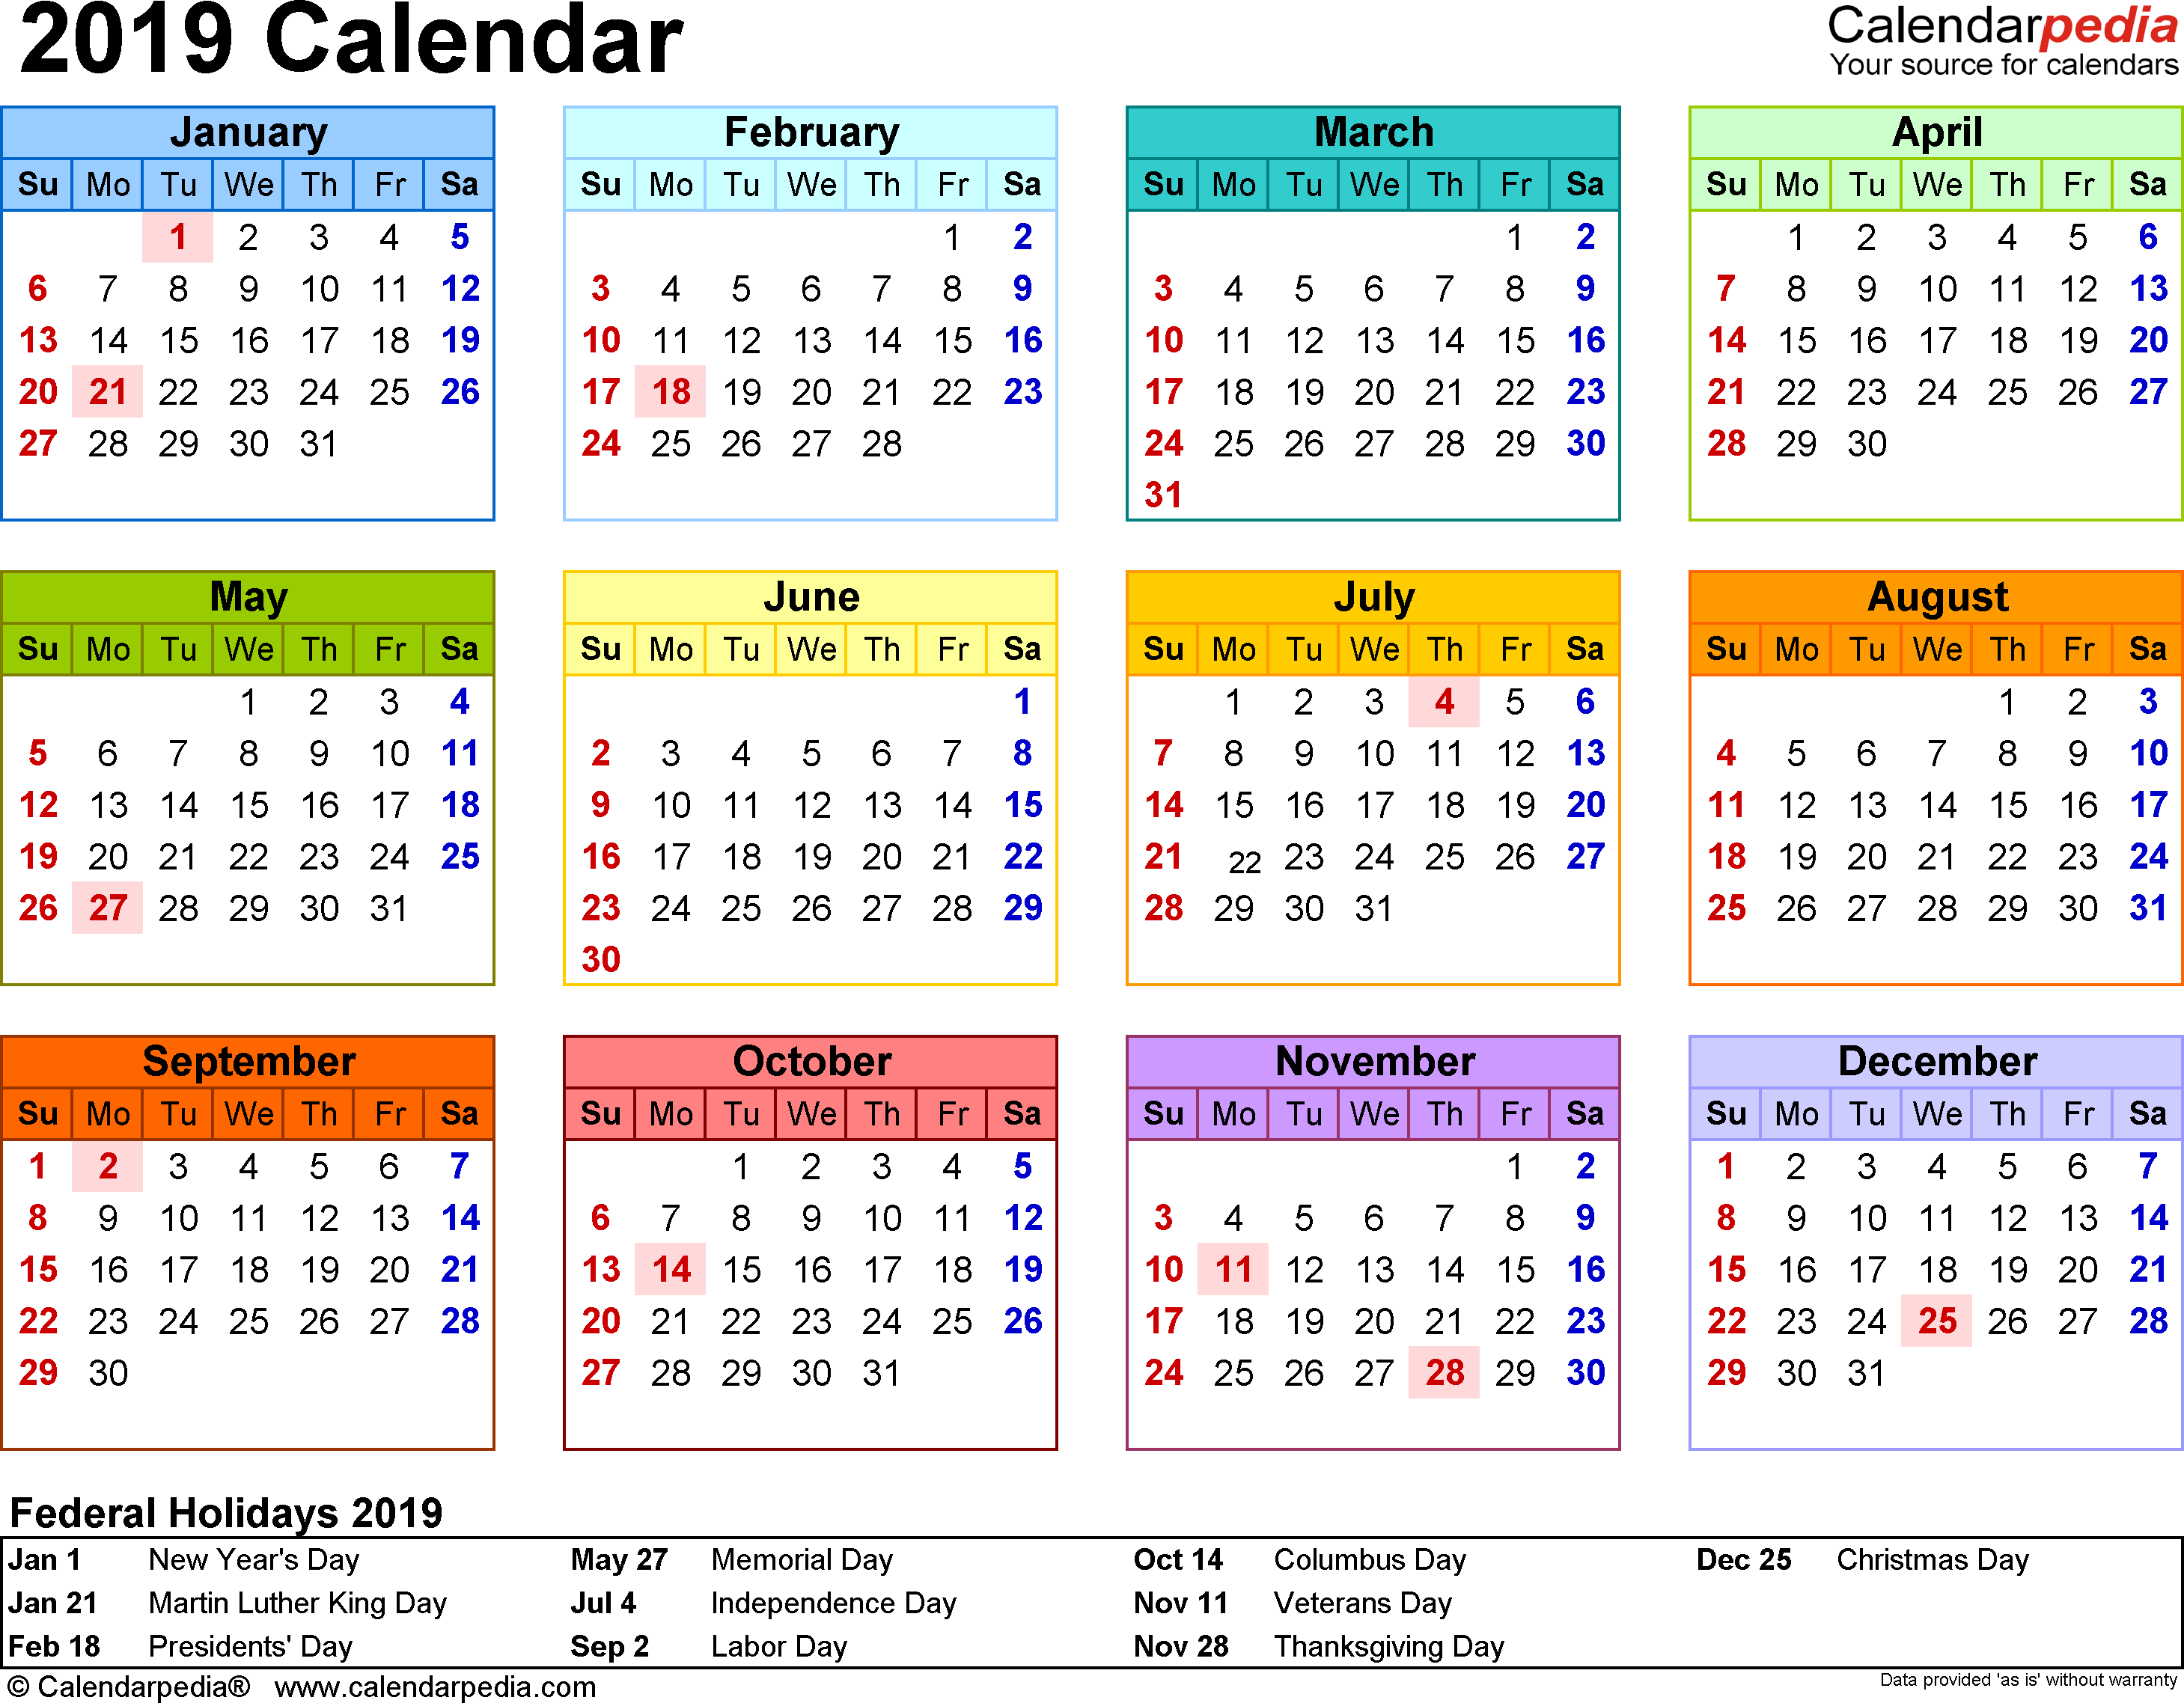 Template 8: 2019 Calendar for PDF, year at a glance, 1 page, in color, landscape orientation